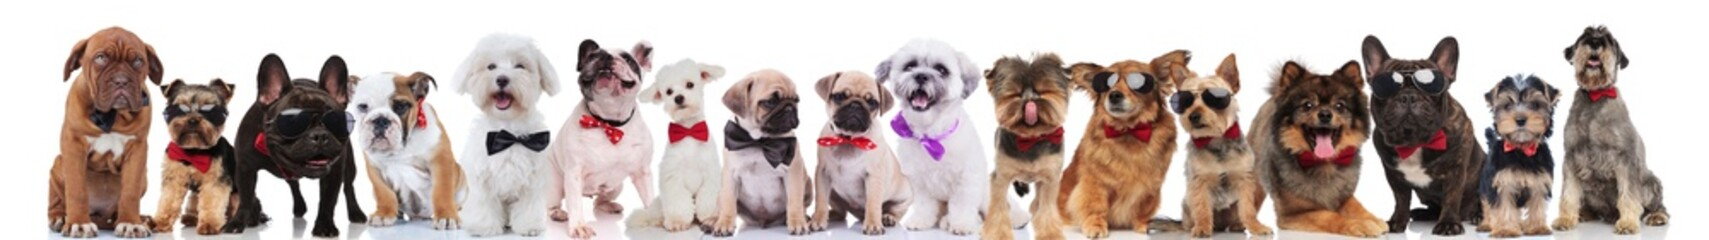 many stylish dogs of different breeds wearing bowties and sunglasses